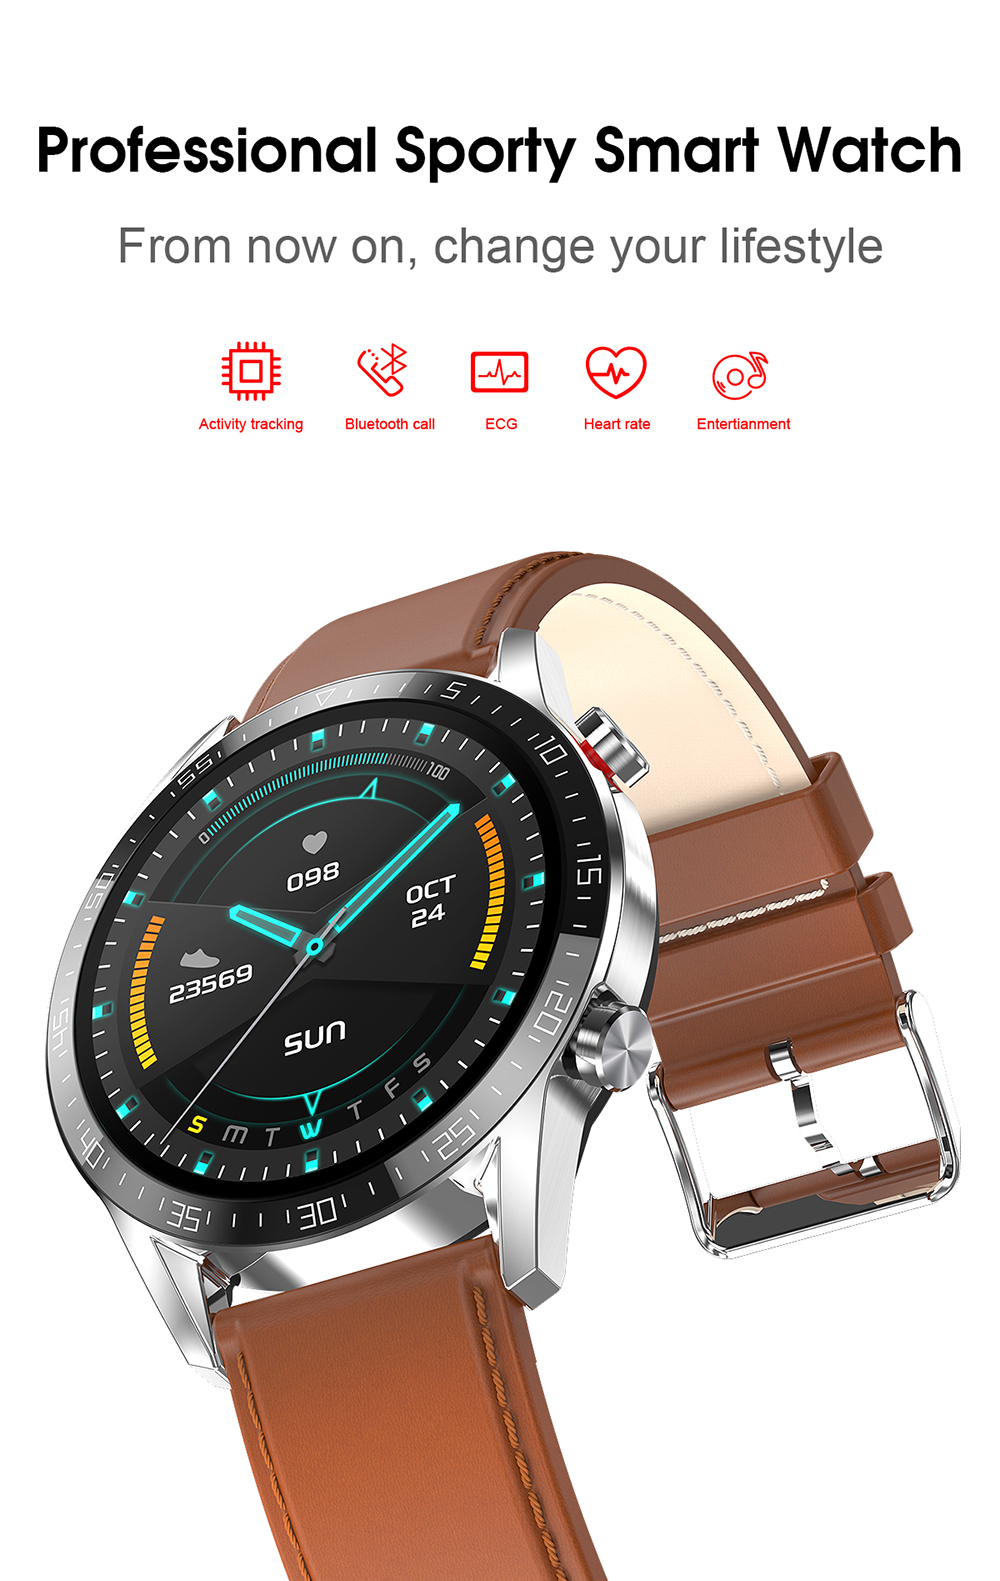 Hda83882c1def451e9e8dfa43c913acd6s Reloj Inteligente Hombre Smart Watch Men 2020 Android IP68 Smartwatch Answer Call Smart Watch Man For Huawei Android Apple Phone